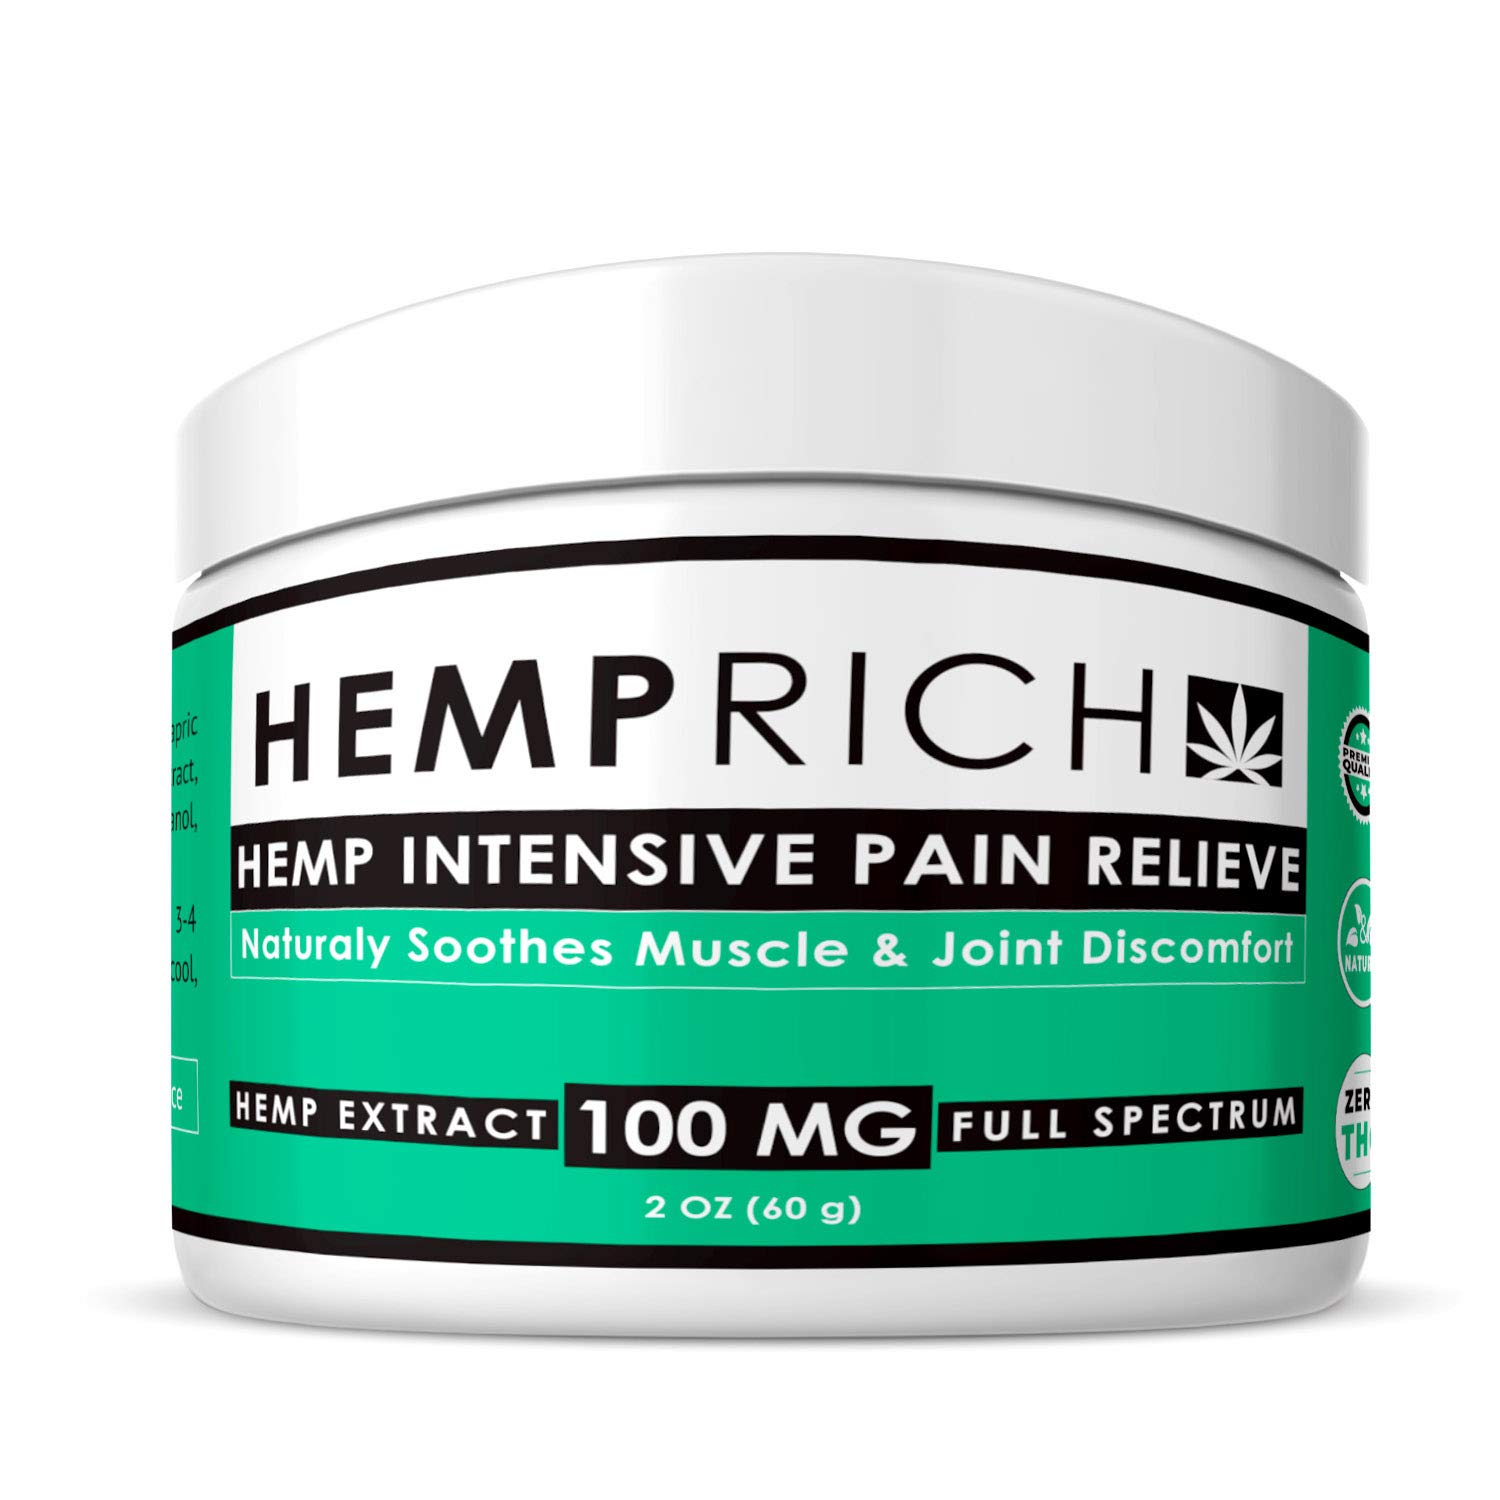 Hemp Extract Pain Relief Cream - 100 Mg - Made in USA - Contains Arnica, MSM & 10% EMU Oil - Fast Acting Natural Pain Reliever for Inflammation, Muscle, Joint, Back, Knee & Arthritis Pain - Non-GMO by Hemprich